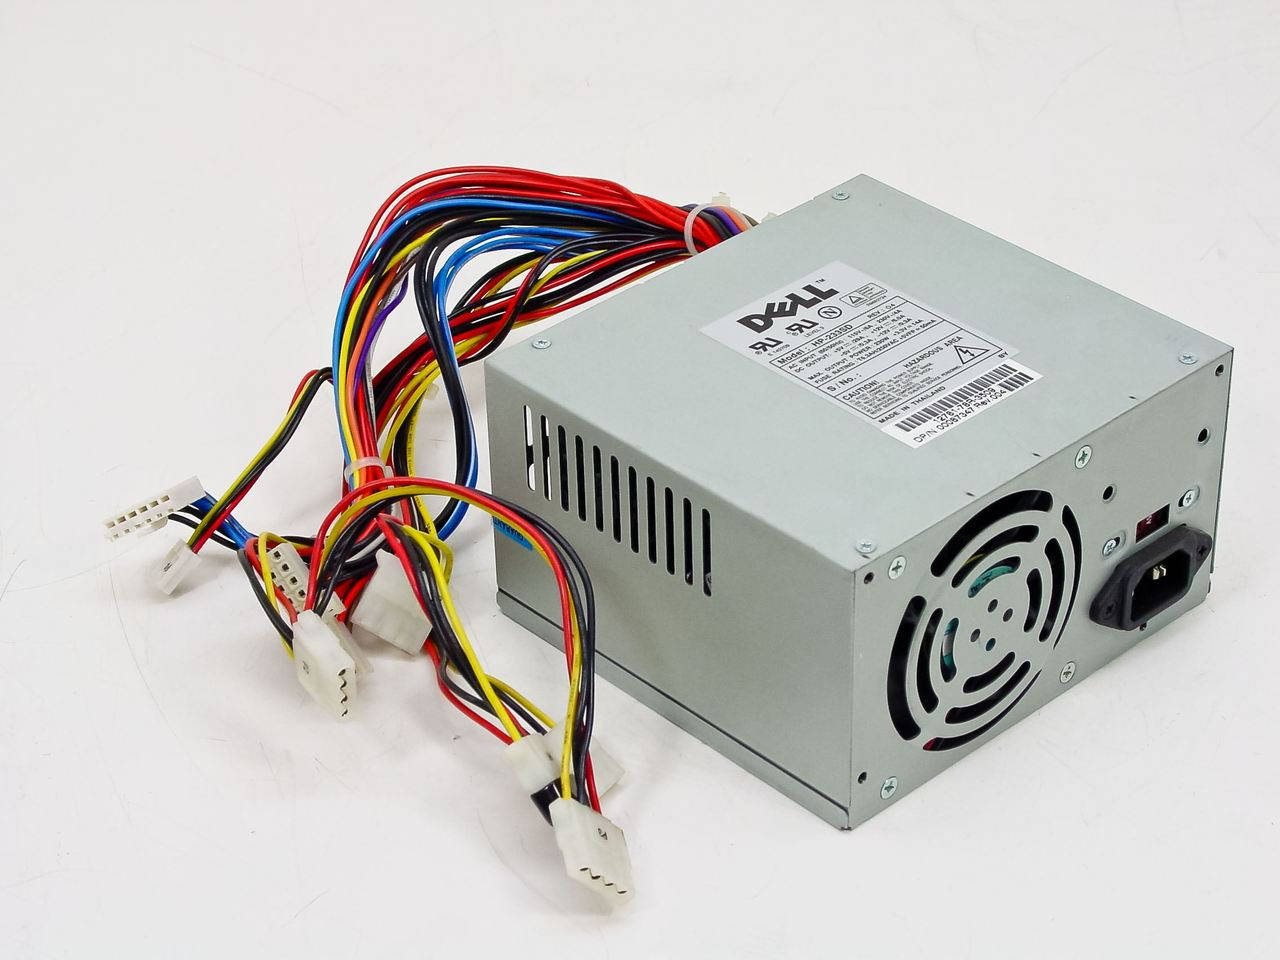 hight resolution of power supply model h275p 01 wiring diagram supply dell power supply pinout diagram dell laptop power